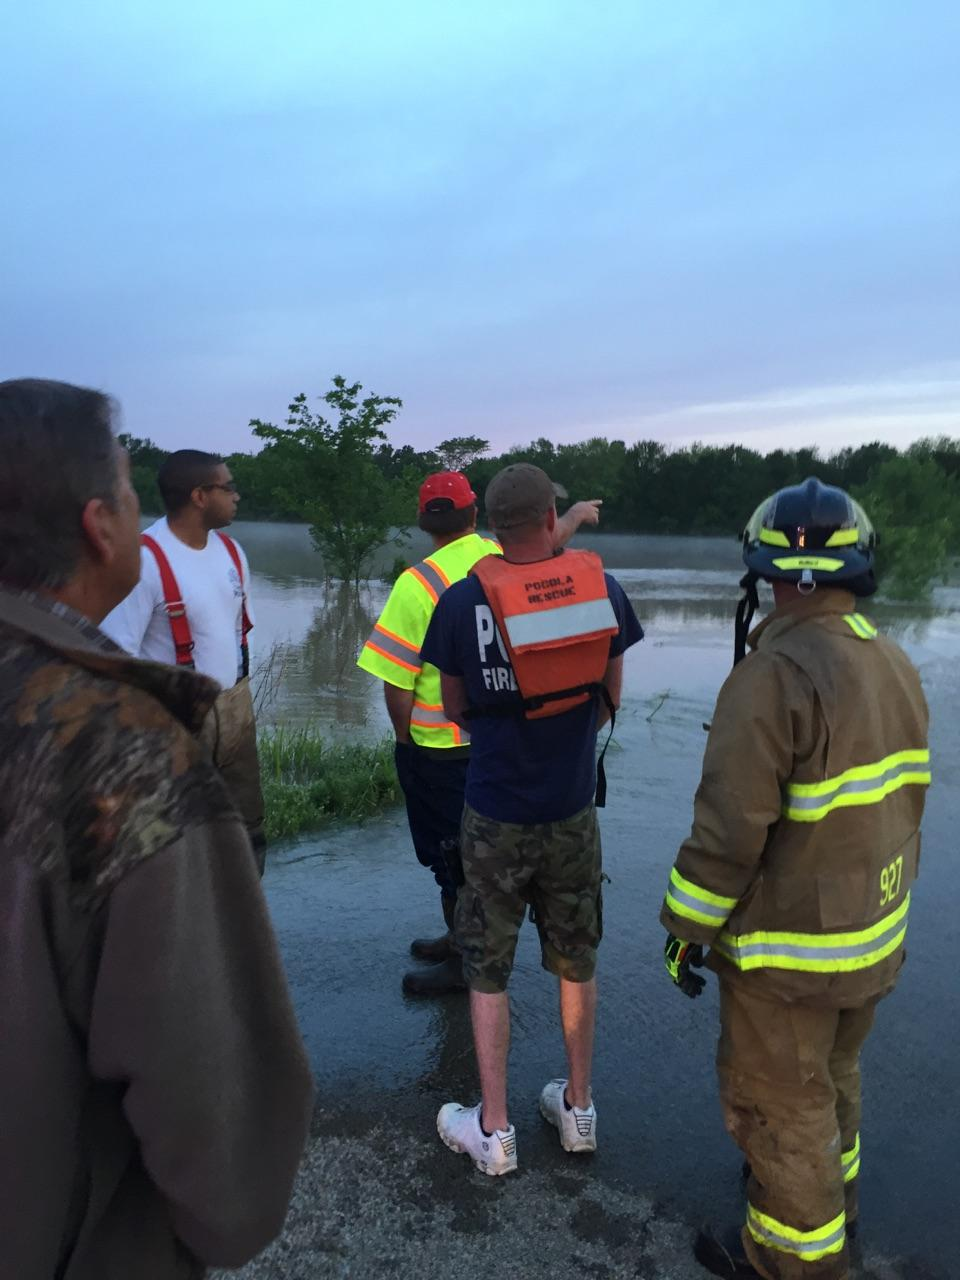 PHOTOS: Crews Work Swift Water Rescue In Spiro | Fort ...